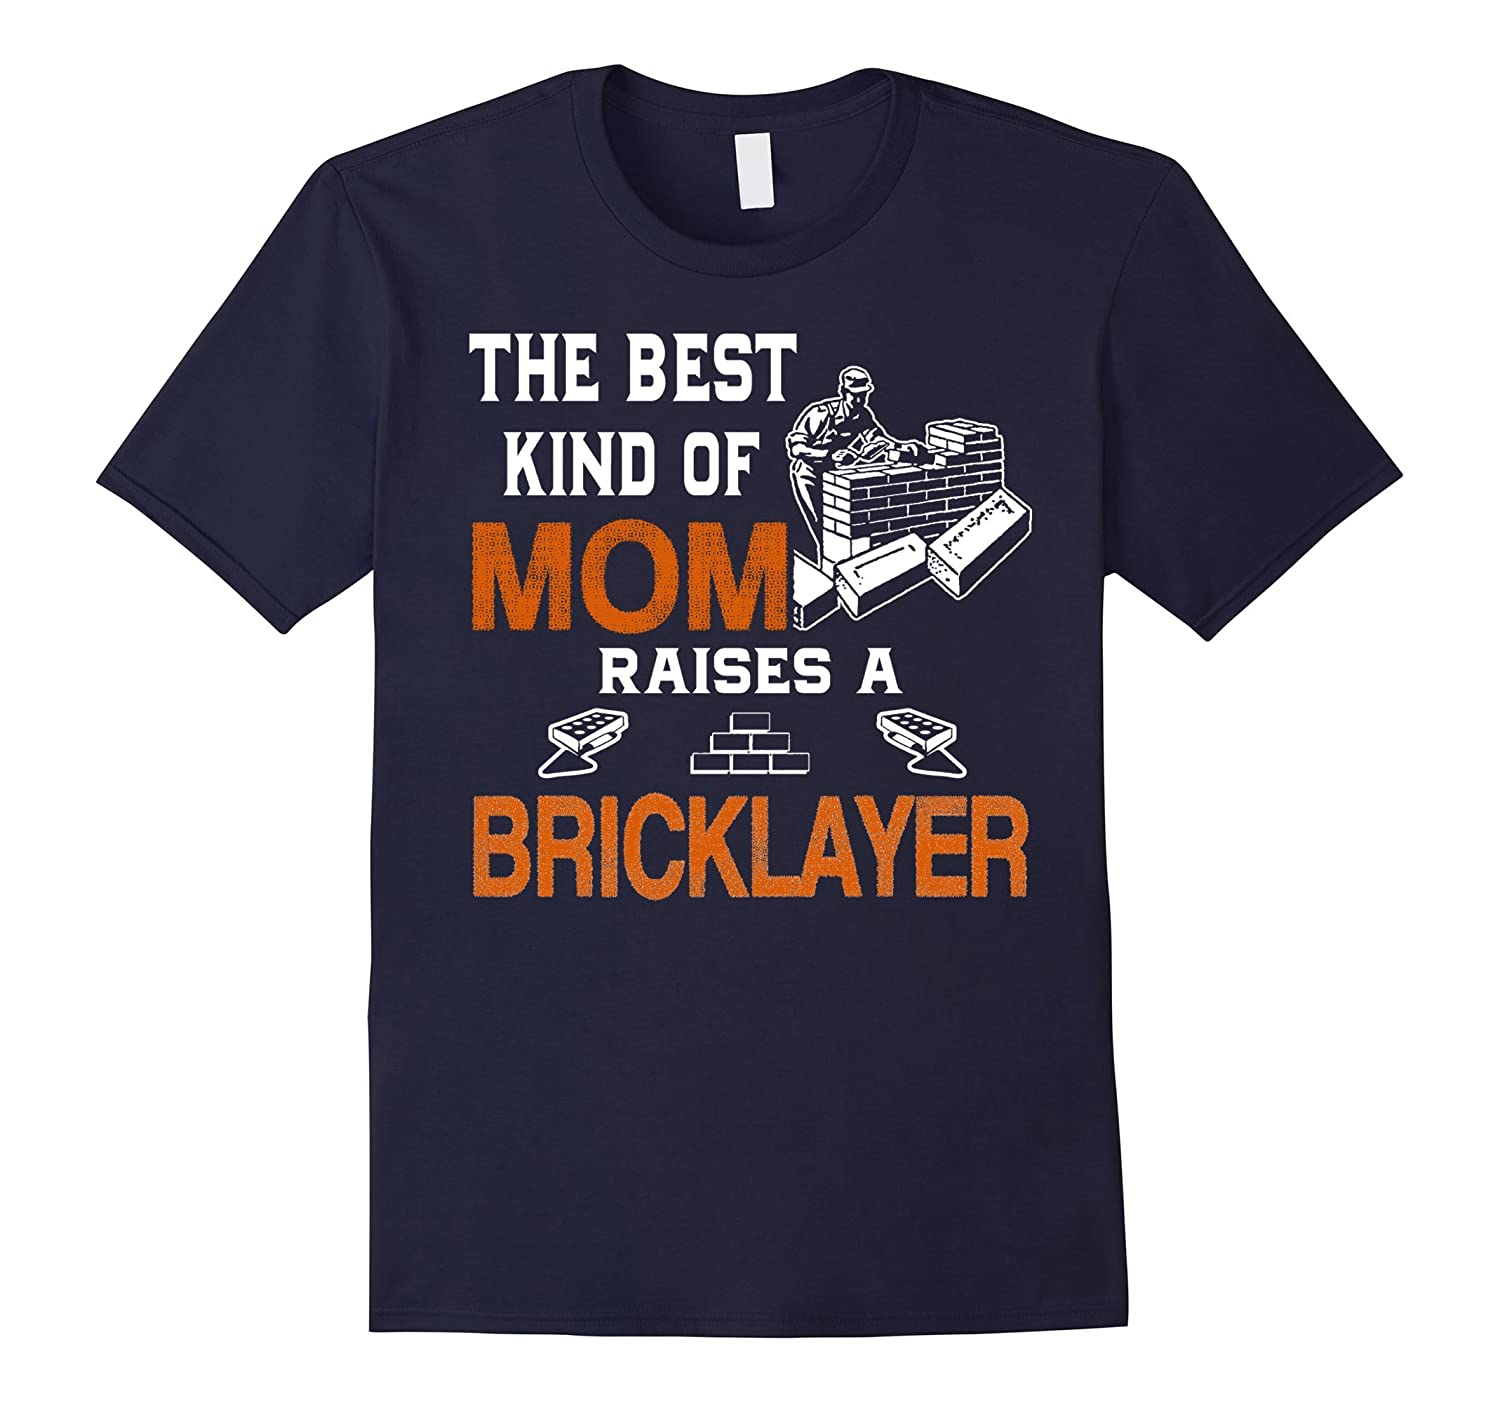 Bricklayer Shirt - The Best Kind Of Mom Raises A Bricklayer-TD